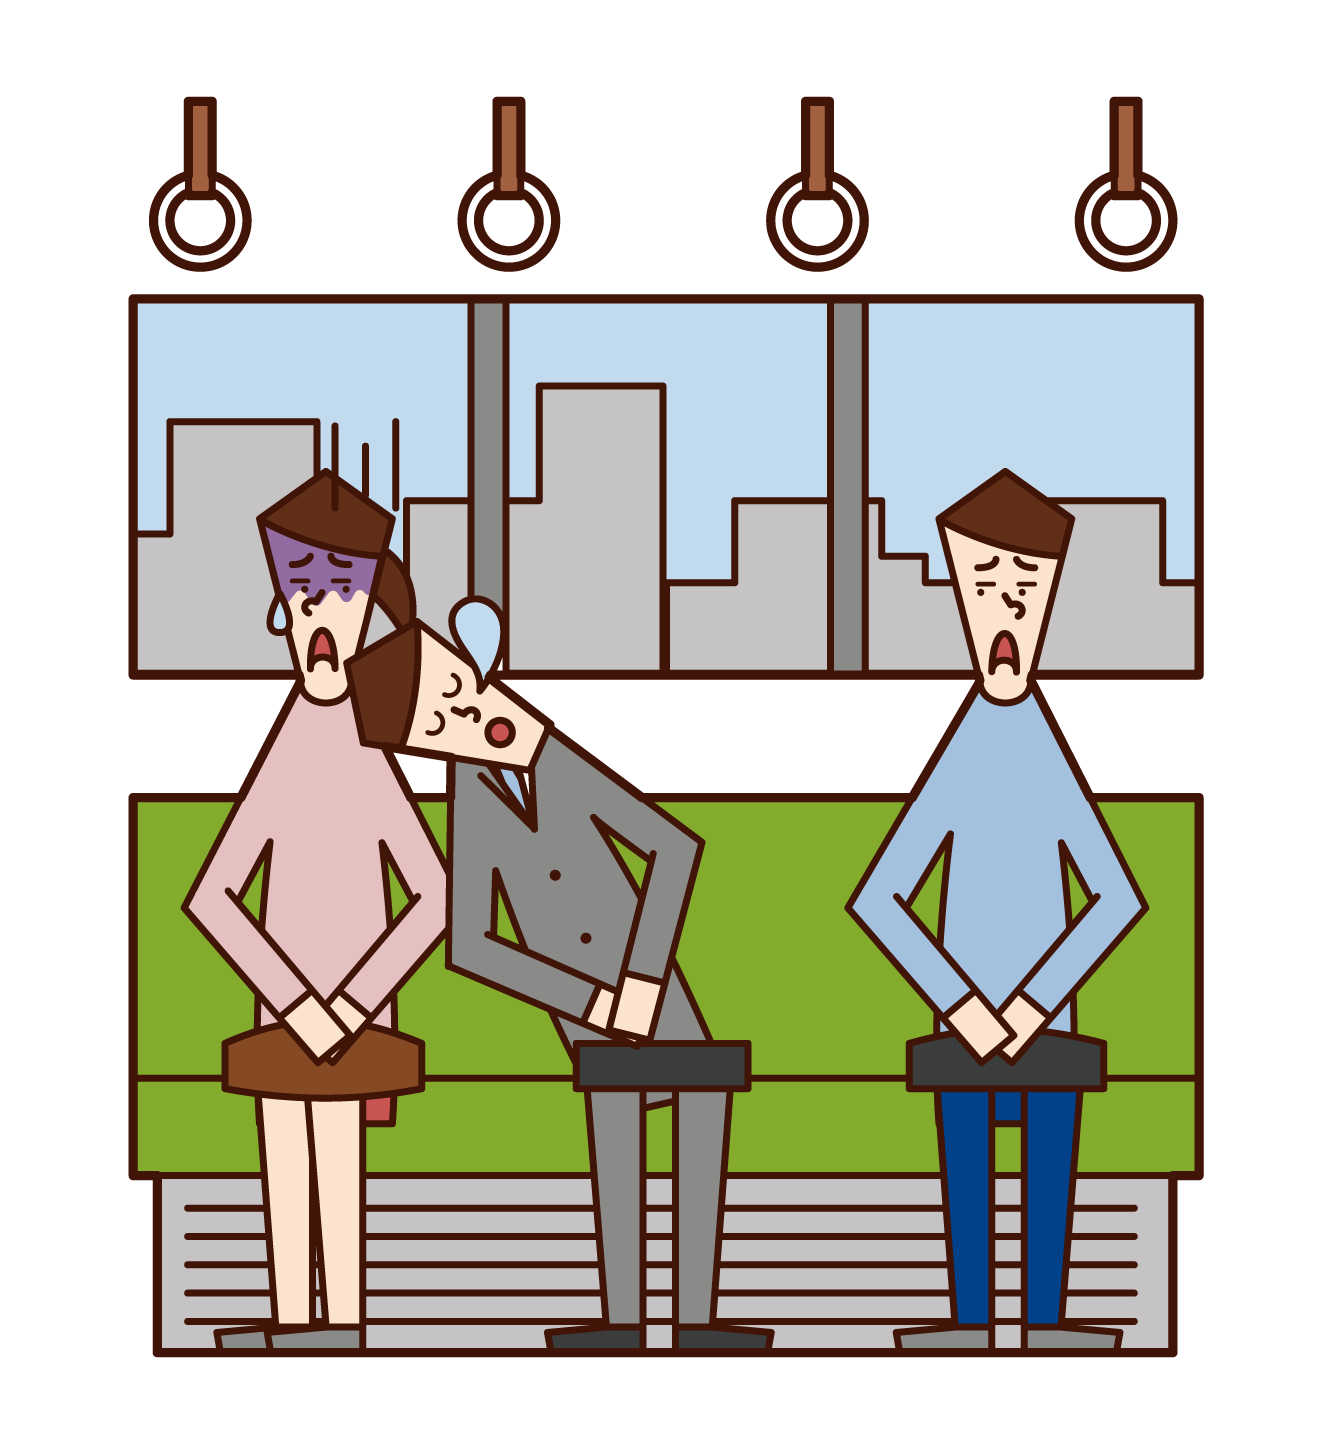 Illustration of a man sleeping while leaning on the person next to him on the train